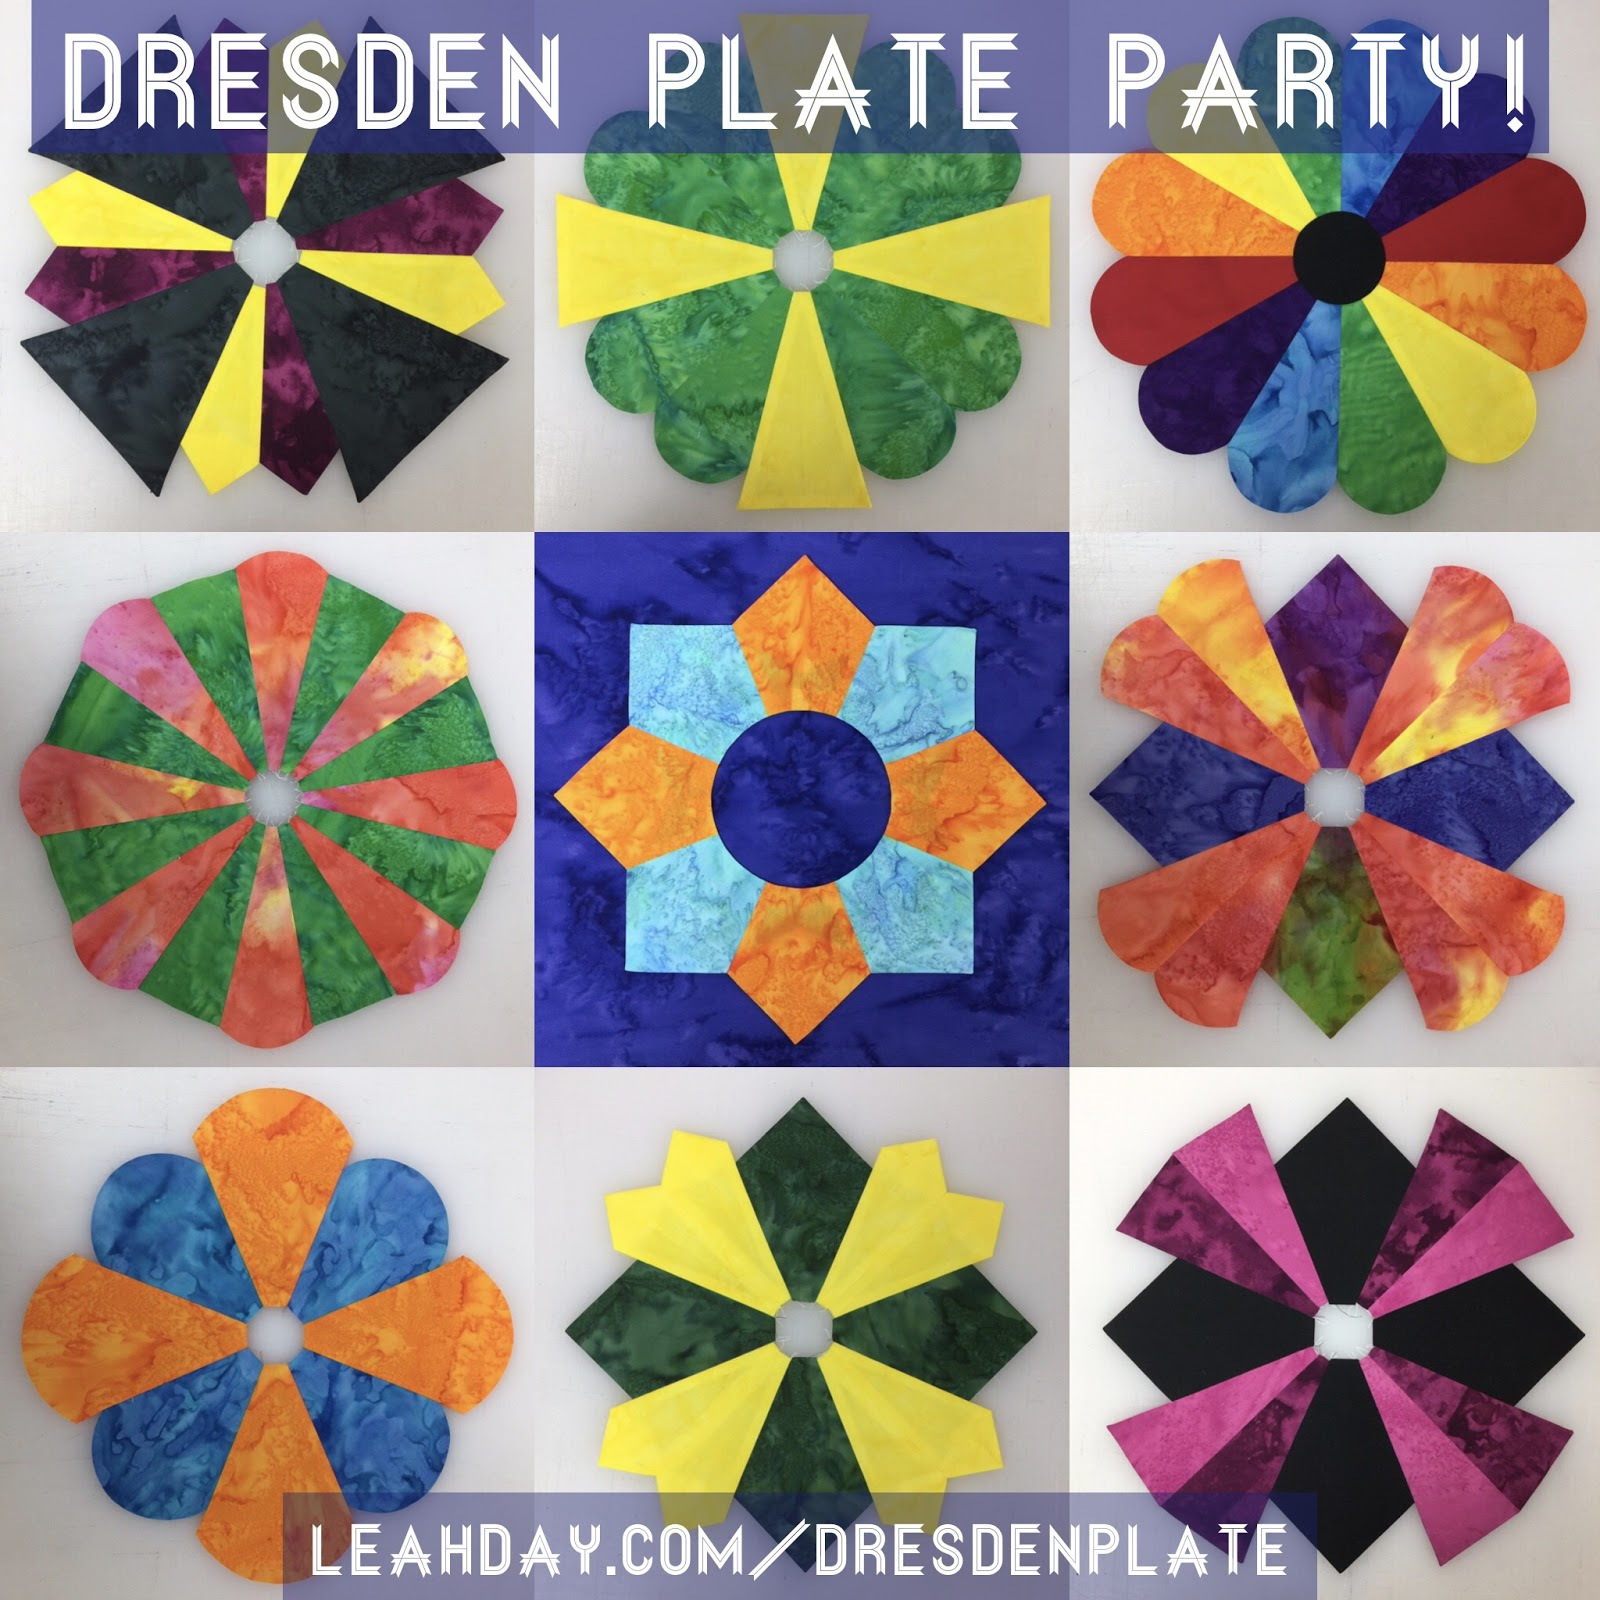 The Free Motion Quilting Project Dresden Plate Party